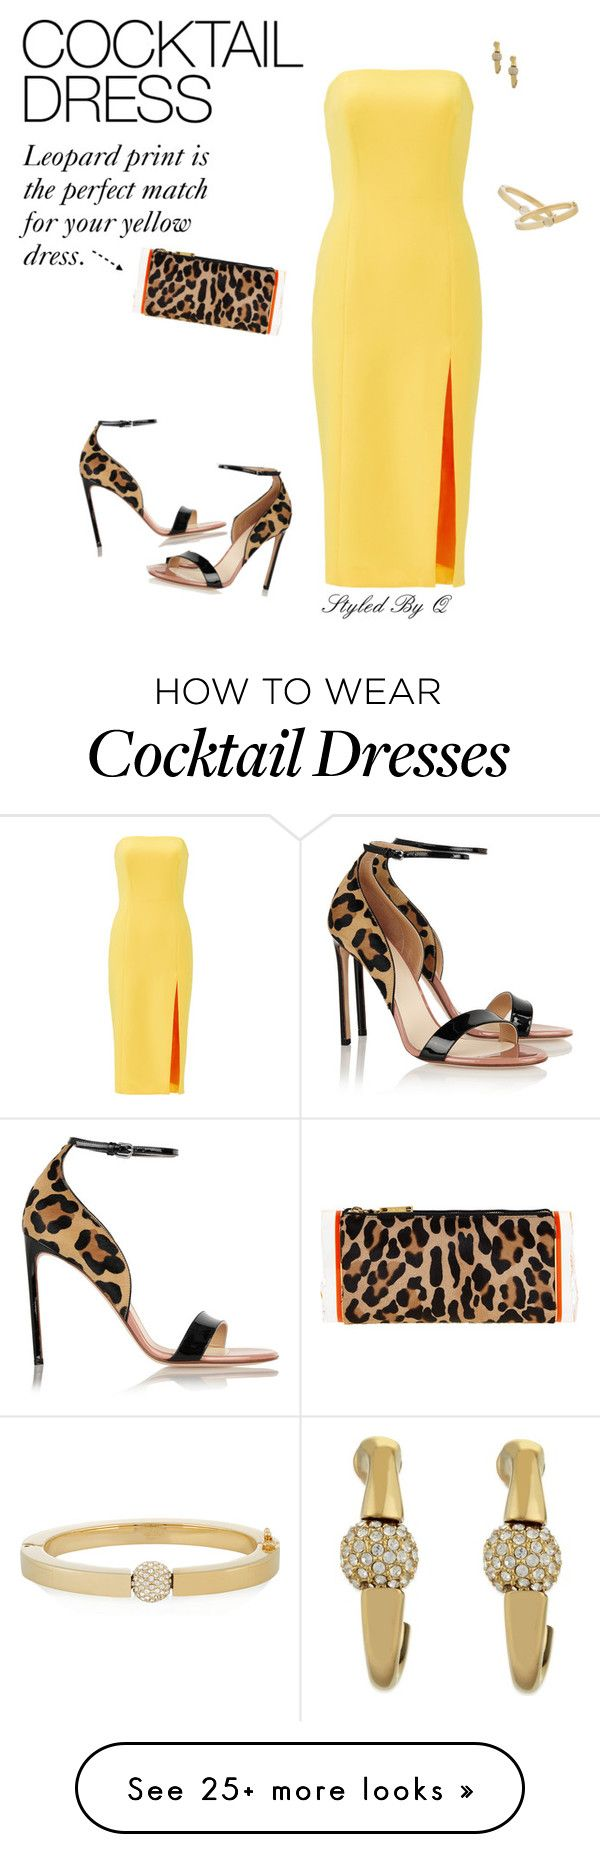 """Summer Inspiration!"" by quintan on Polyvore featuring Jay Godfrey, Francesco Russo, Edie Parker and Chloé"